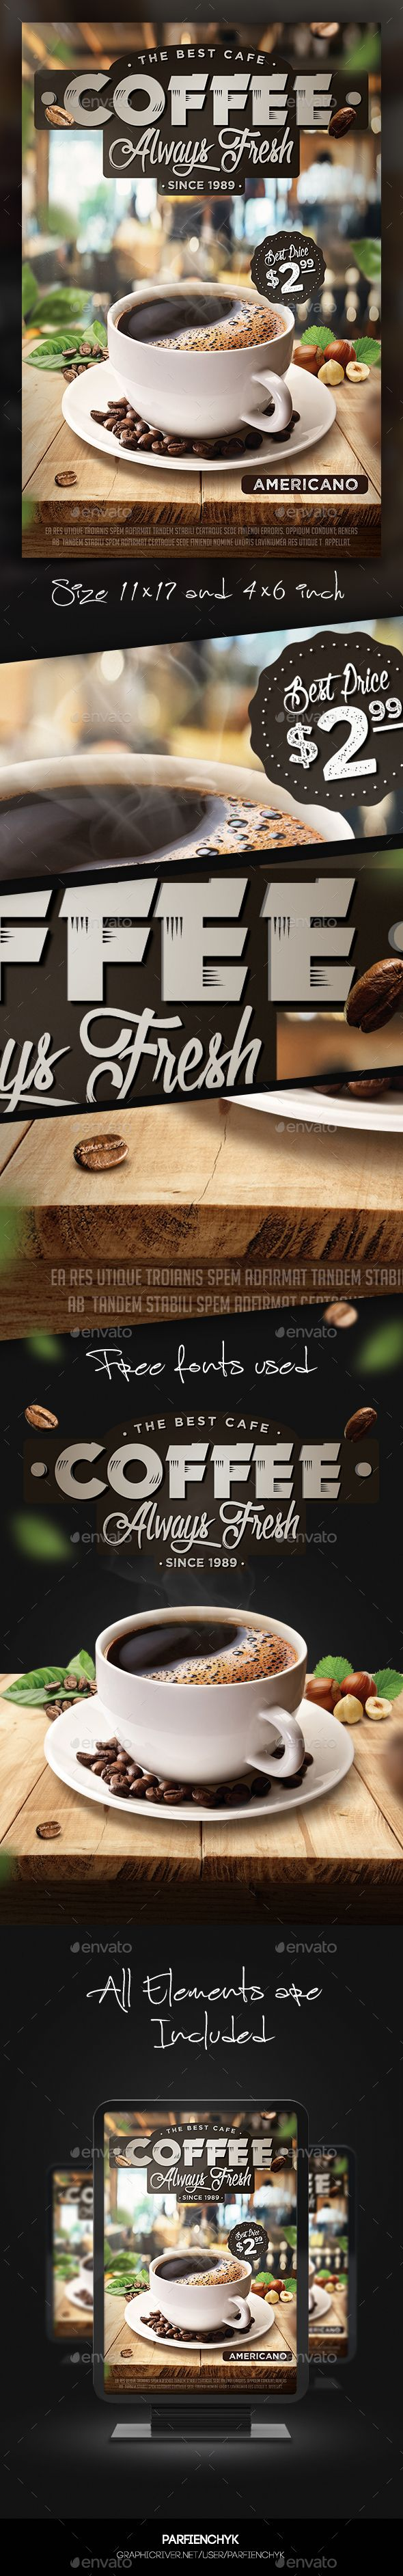 Coffee Flyer Template - PSD Template • Only available here ➝ http://graphicriver.net/item/coffee-flyer-template/13909784?ref=pxcr